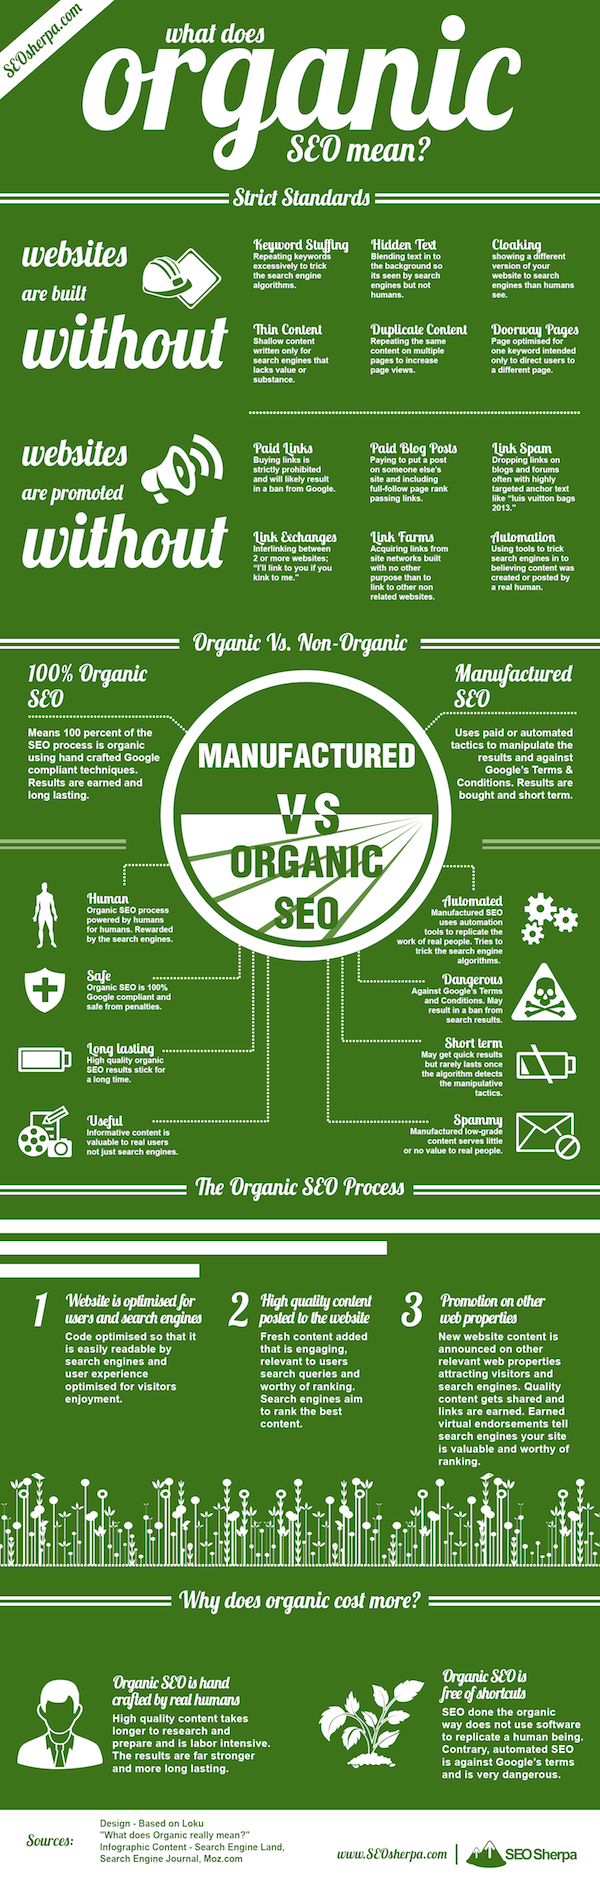 The Organic SEO Process [INFOGRAPHIC]